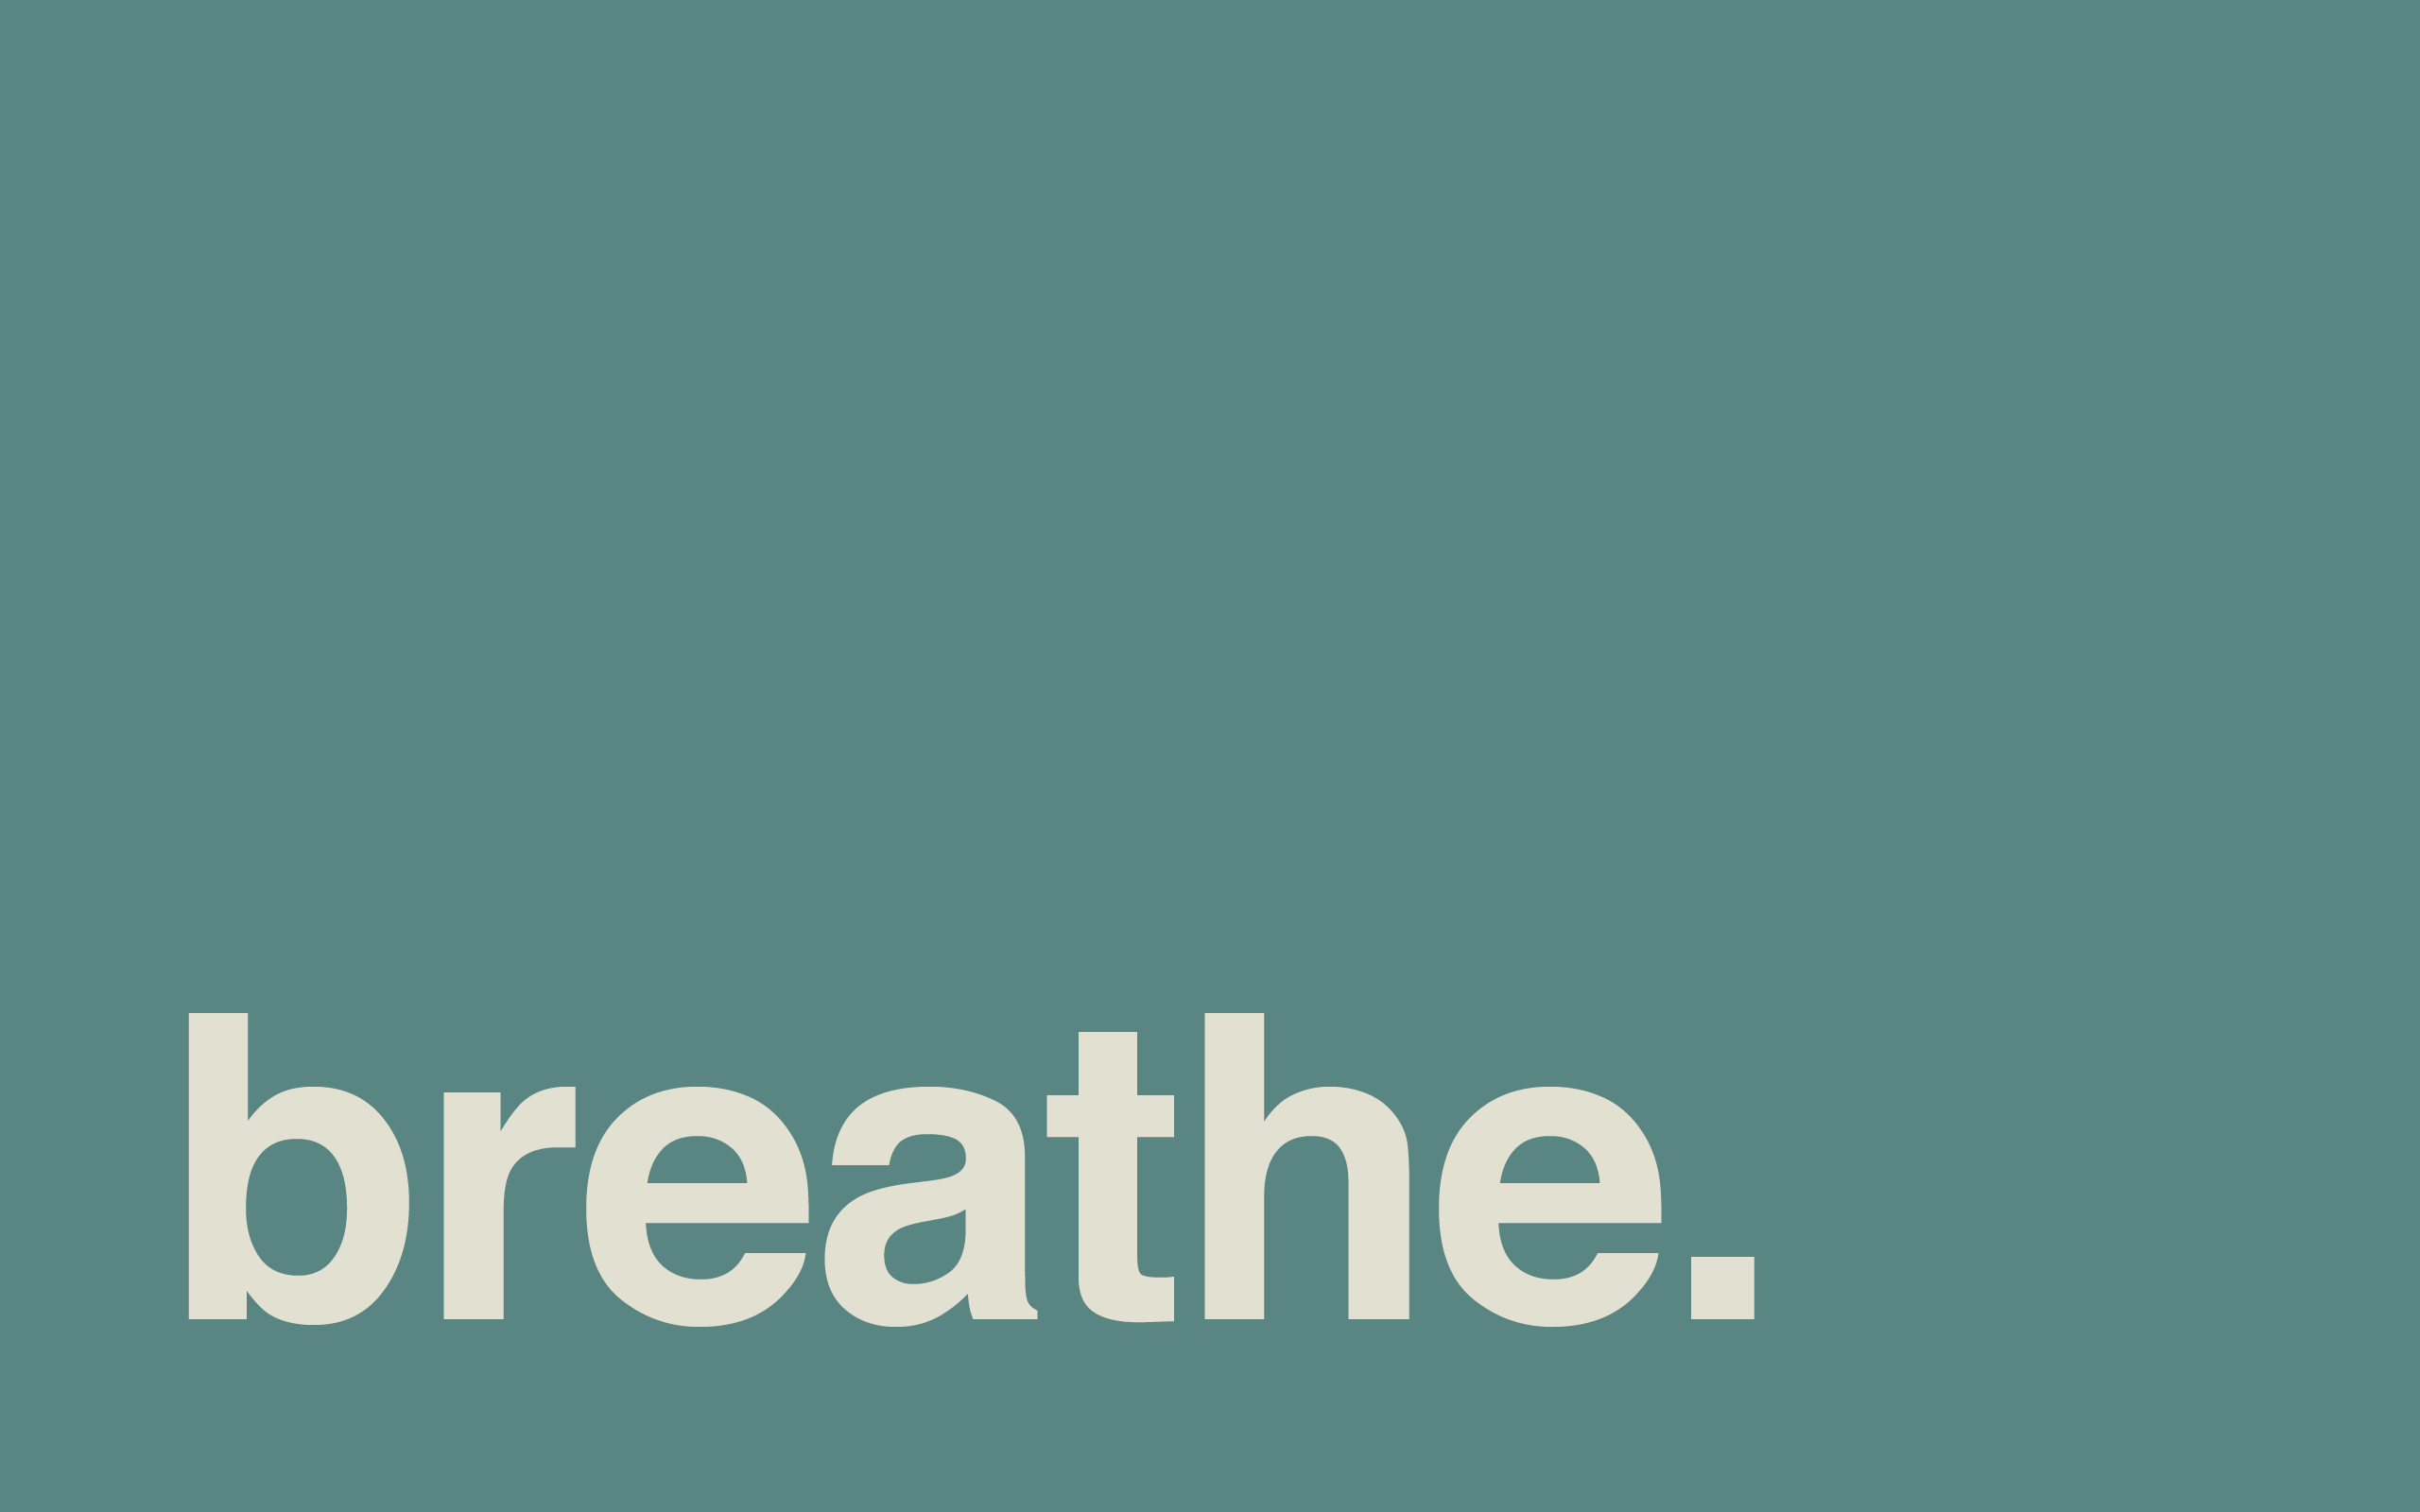 Motivational Quotes Wallpapers Iphone 6 Breathe Minimal Desktop Wallpaper Centered Chaos